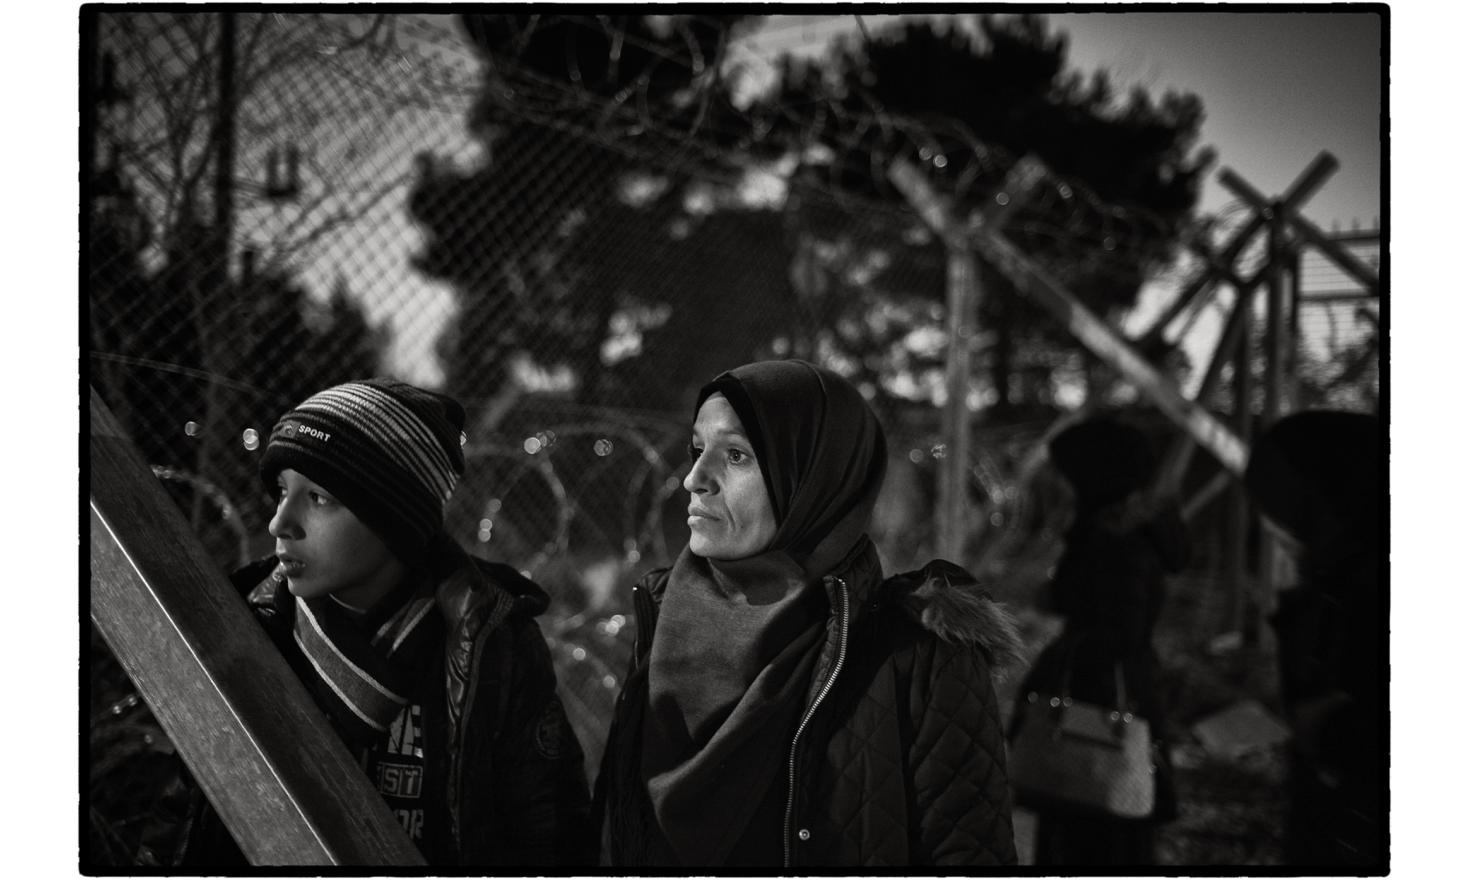 Gevgelija, border post between Greece and the Former Yugoslav Republic of Macedonia. Only refugees from countries at war (Syrians, Iraqis and Afghans) were allowed, not so long ago, to cross the border and continue their journey to northern Europe